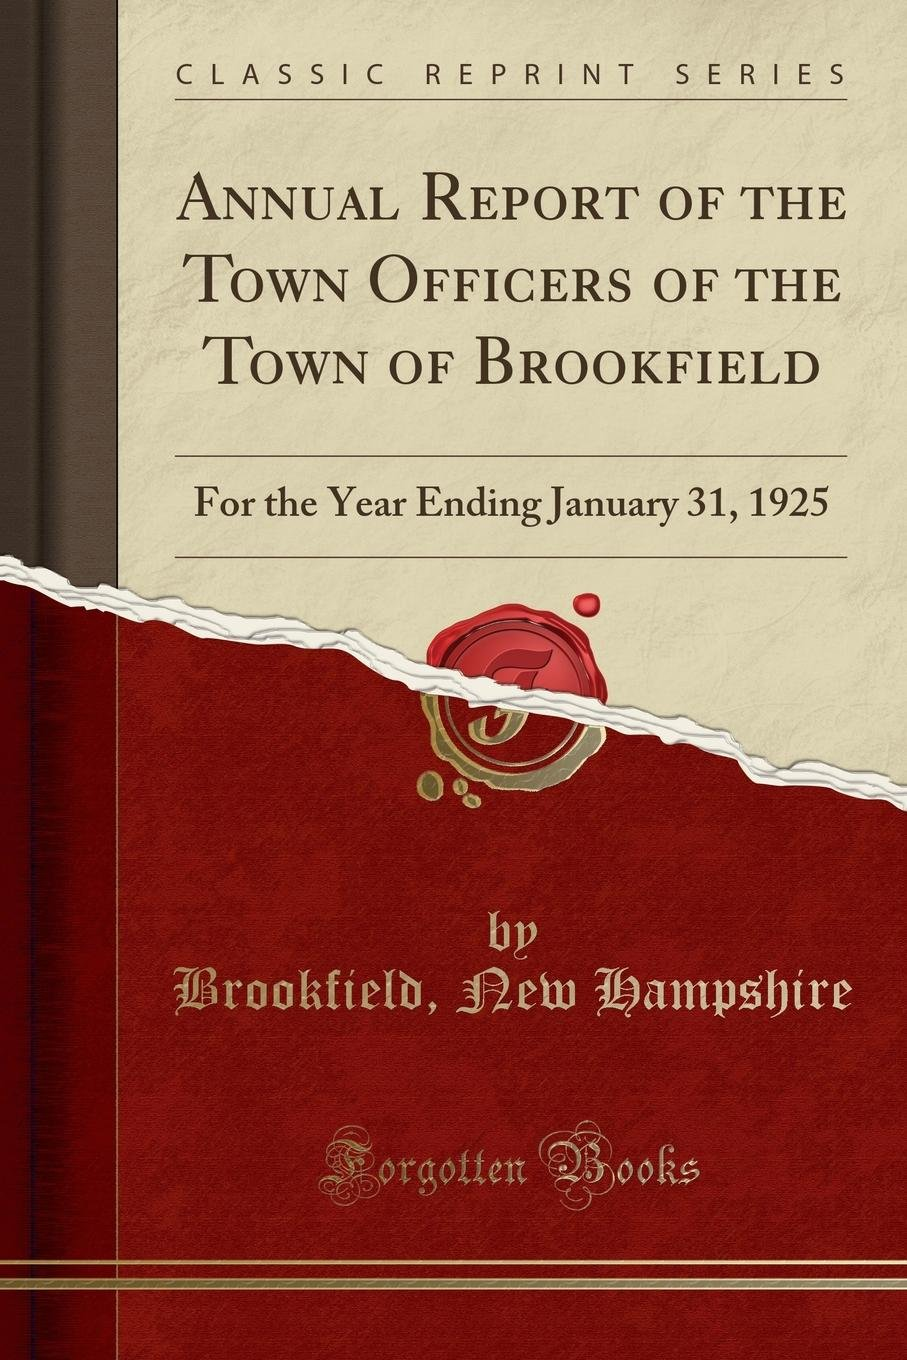 Download Annual Report of the Town Officers of the Town of Brookfield: For the Year Ending January 31, 1925 (Classic Reprint) ebook